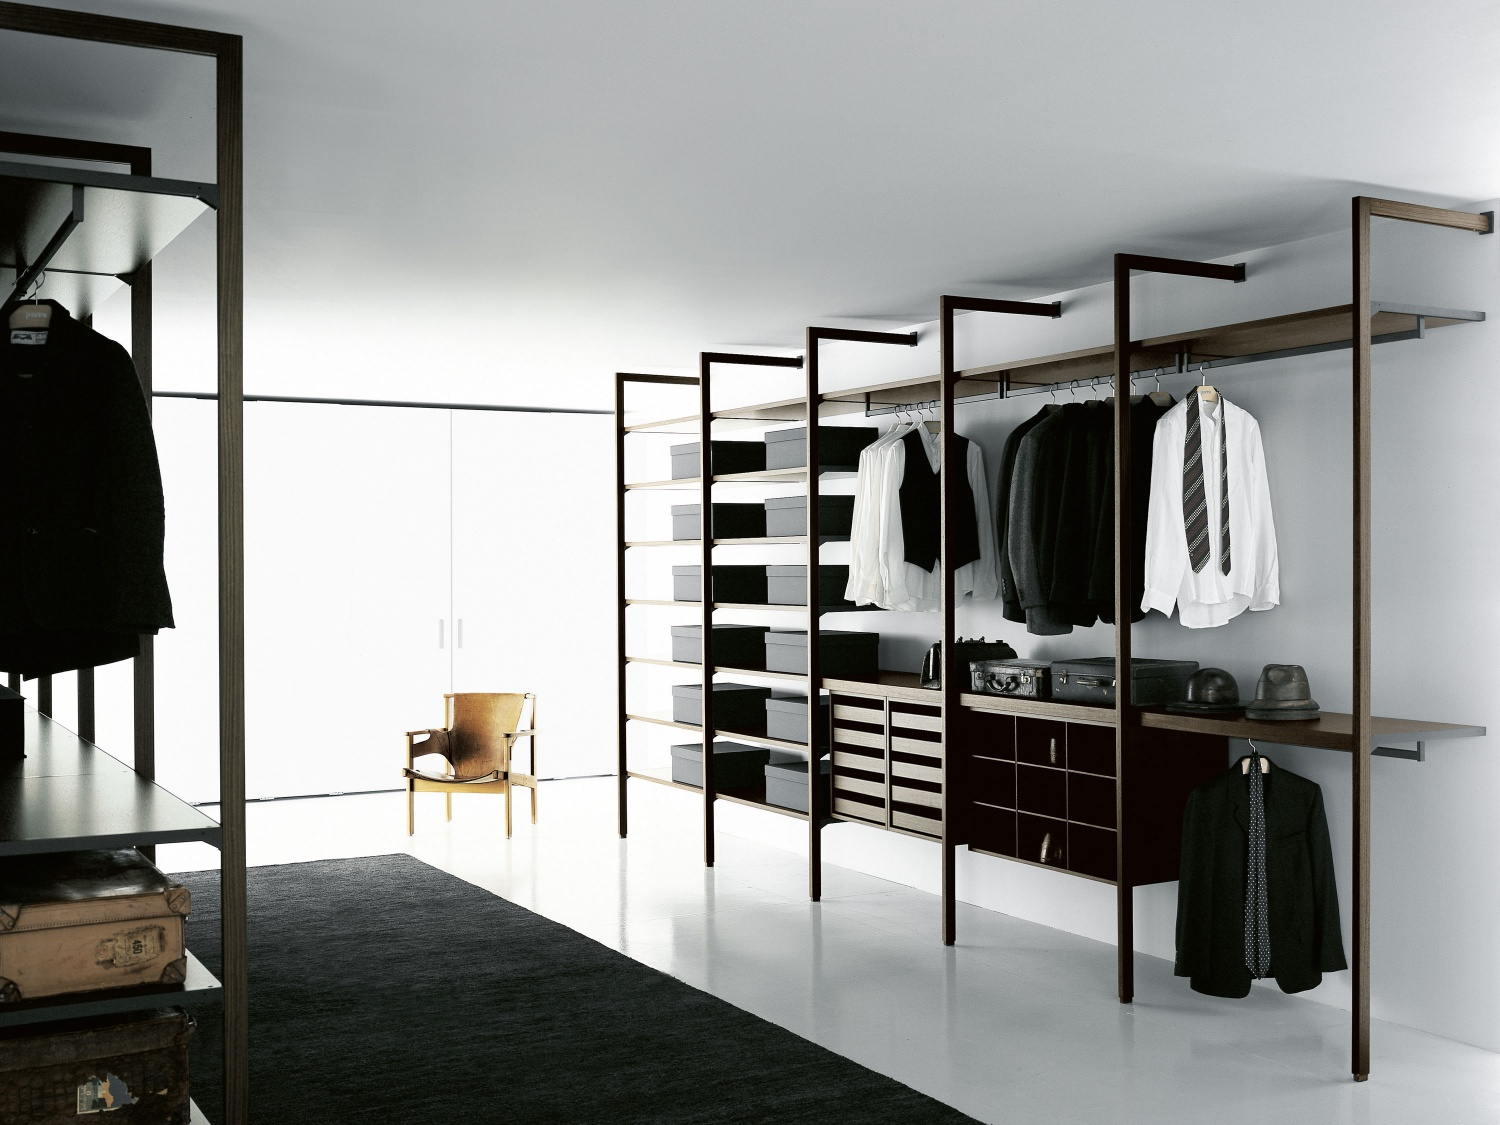 Porro spa prodotti sistemi cabina armadio walk in closet - Cabina armadio design ...